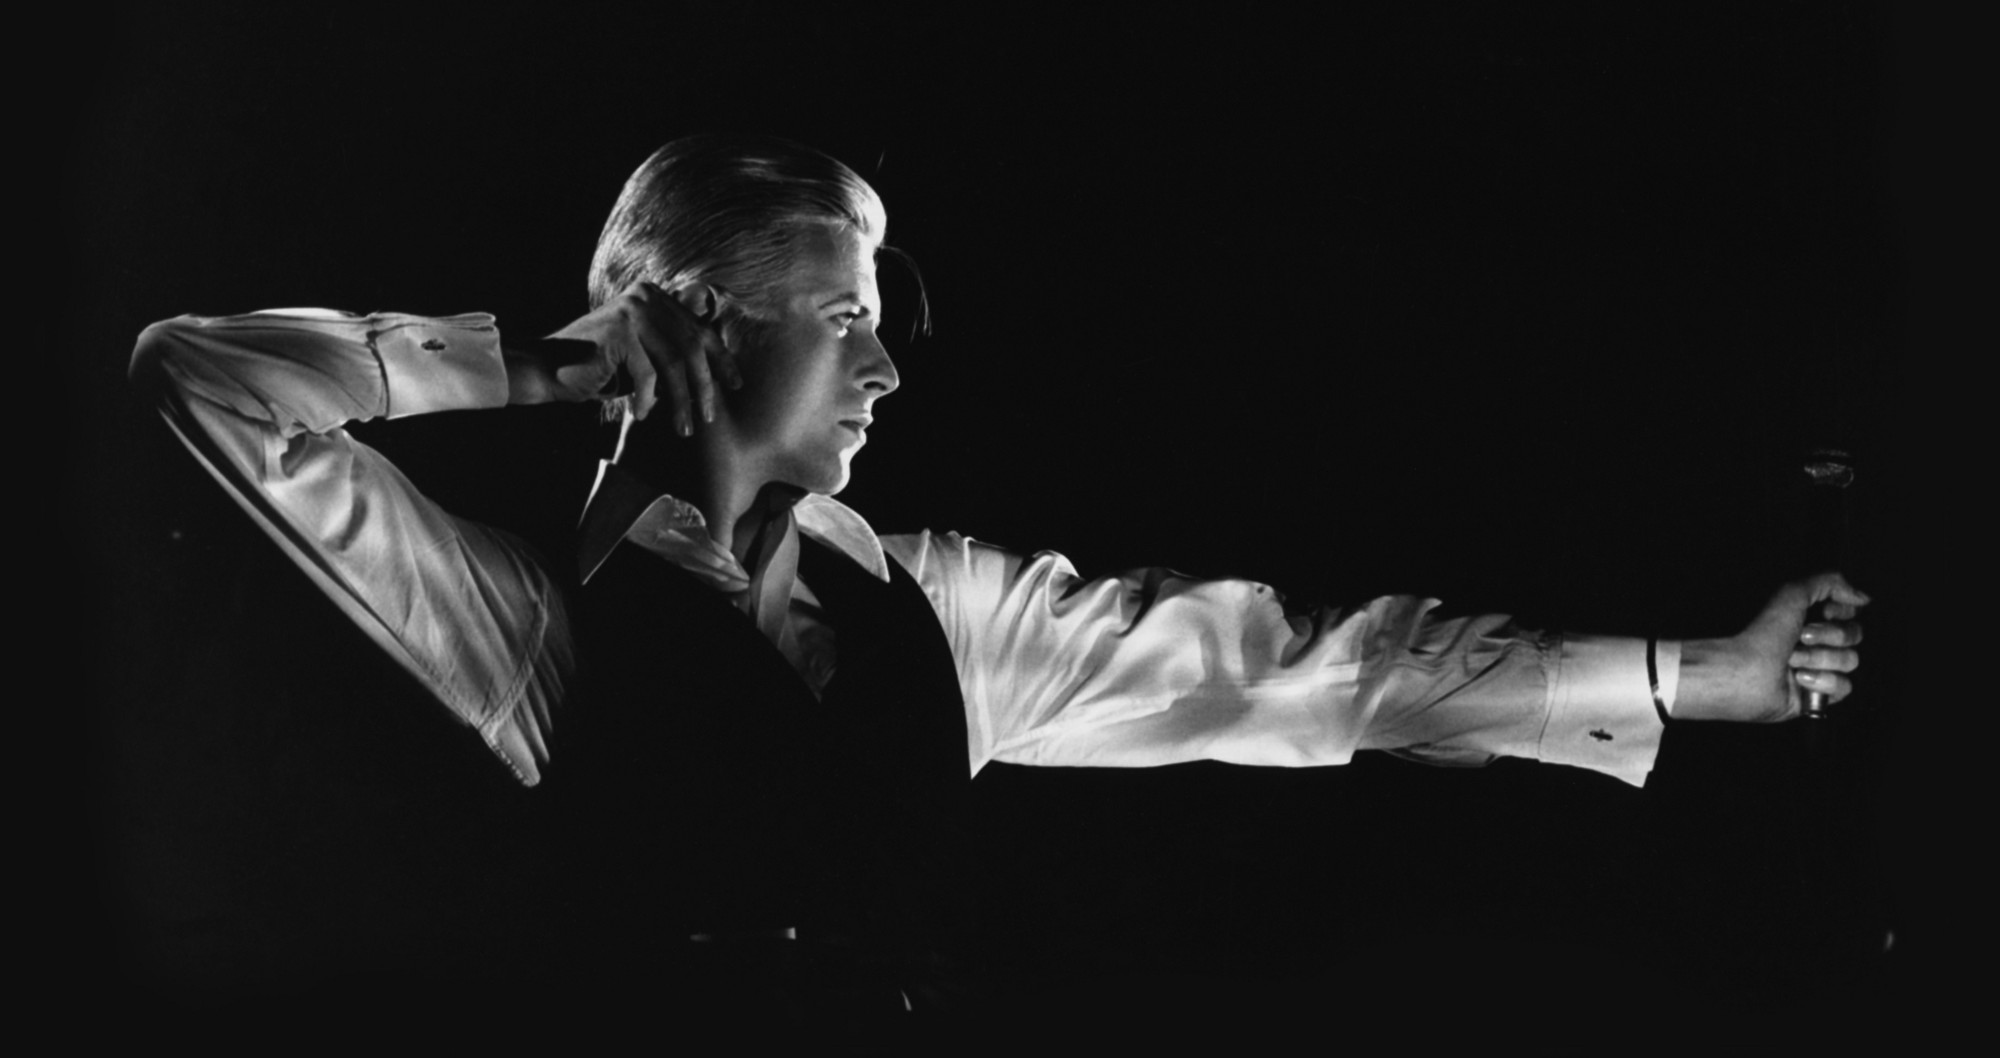 david bowie performing fame on the cher show in 1975 jack 96 9